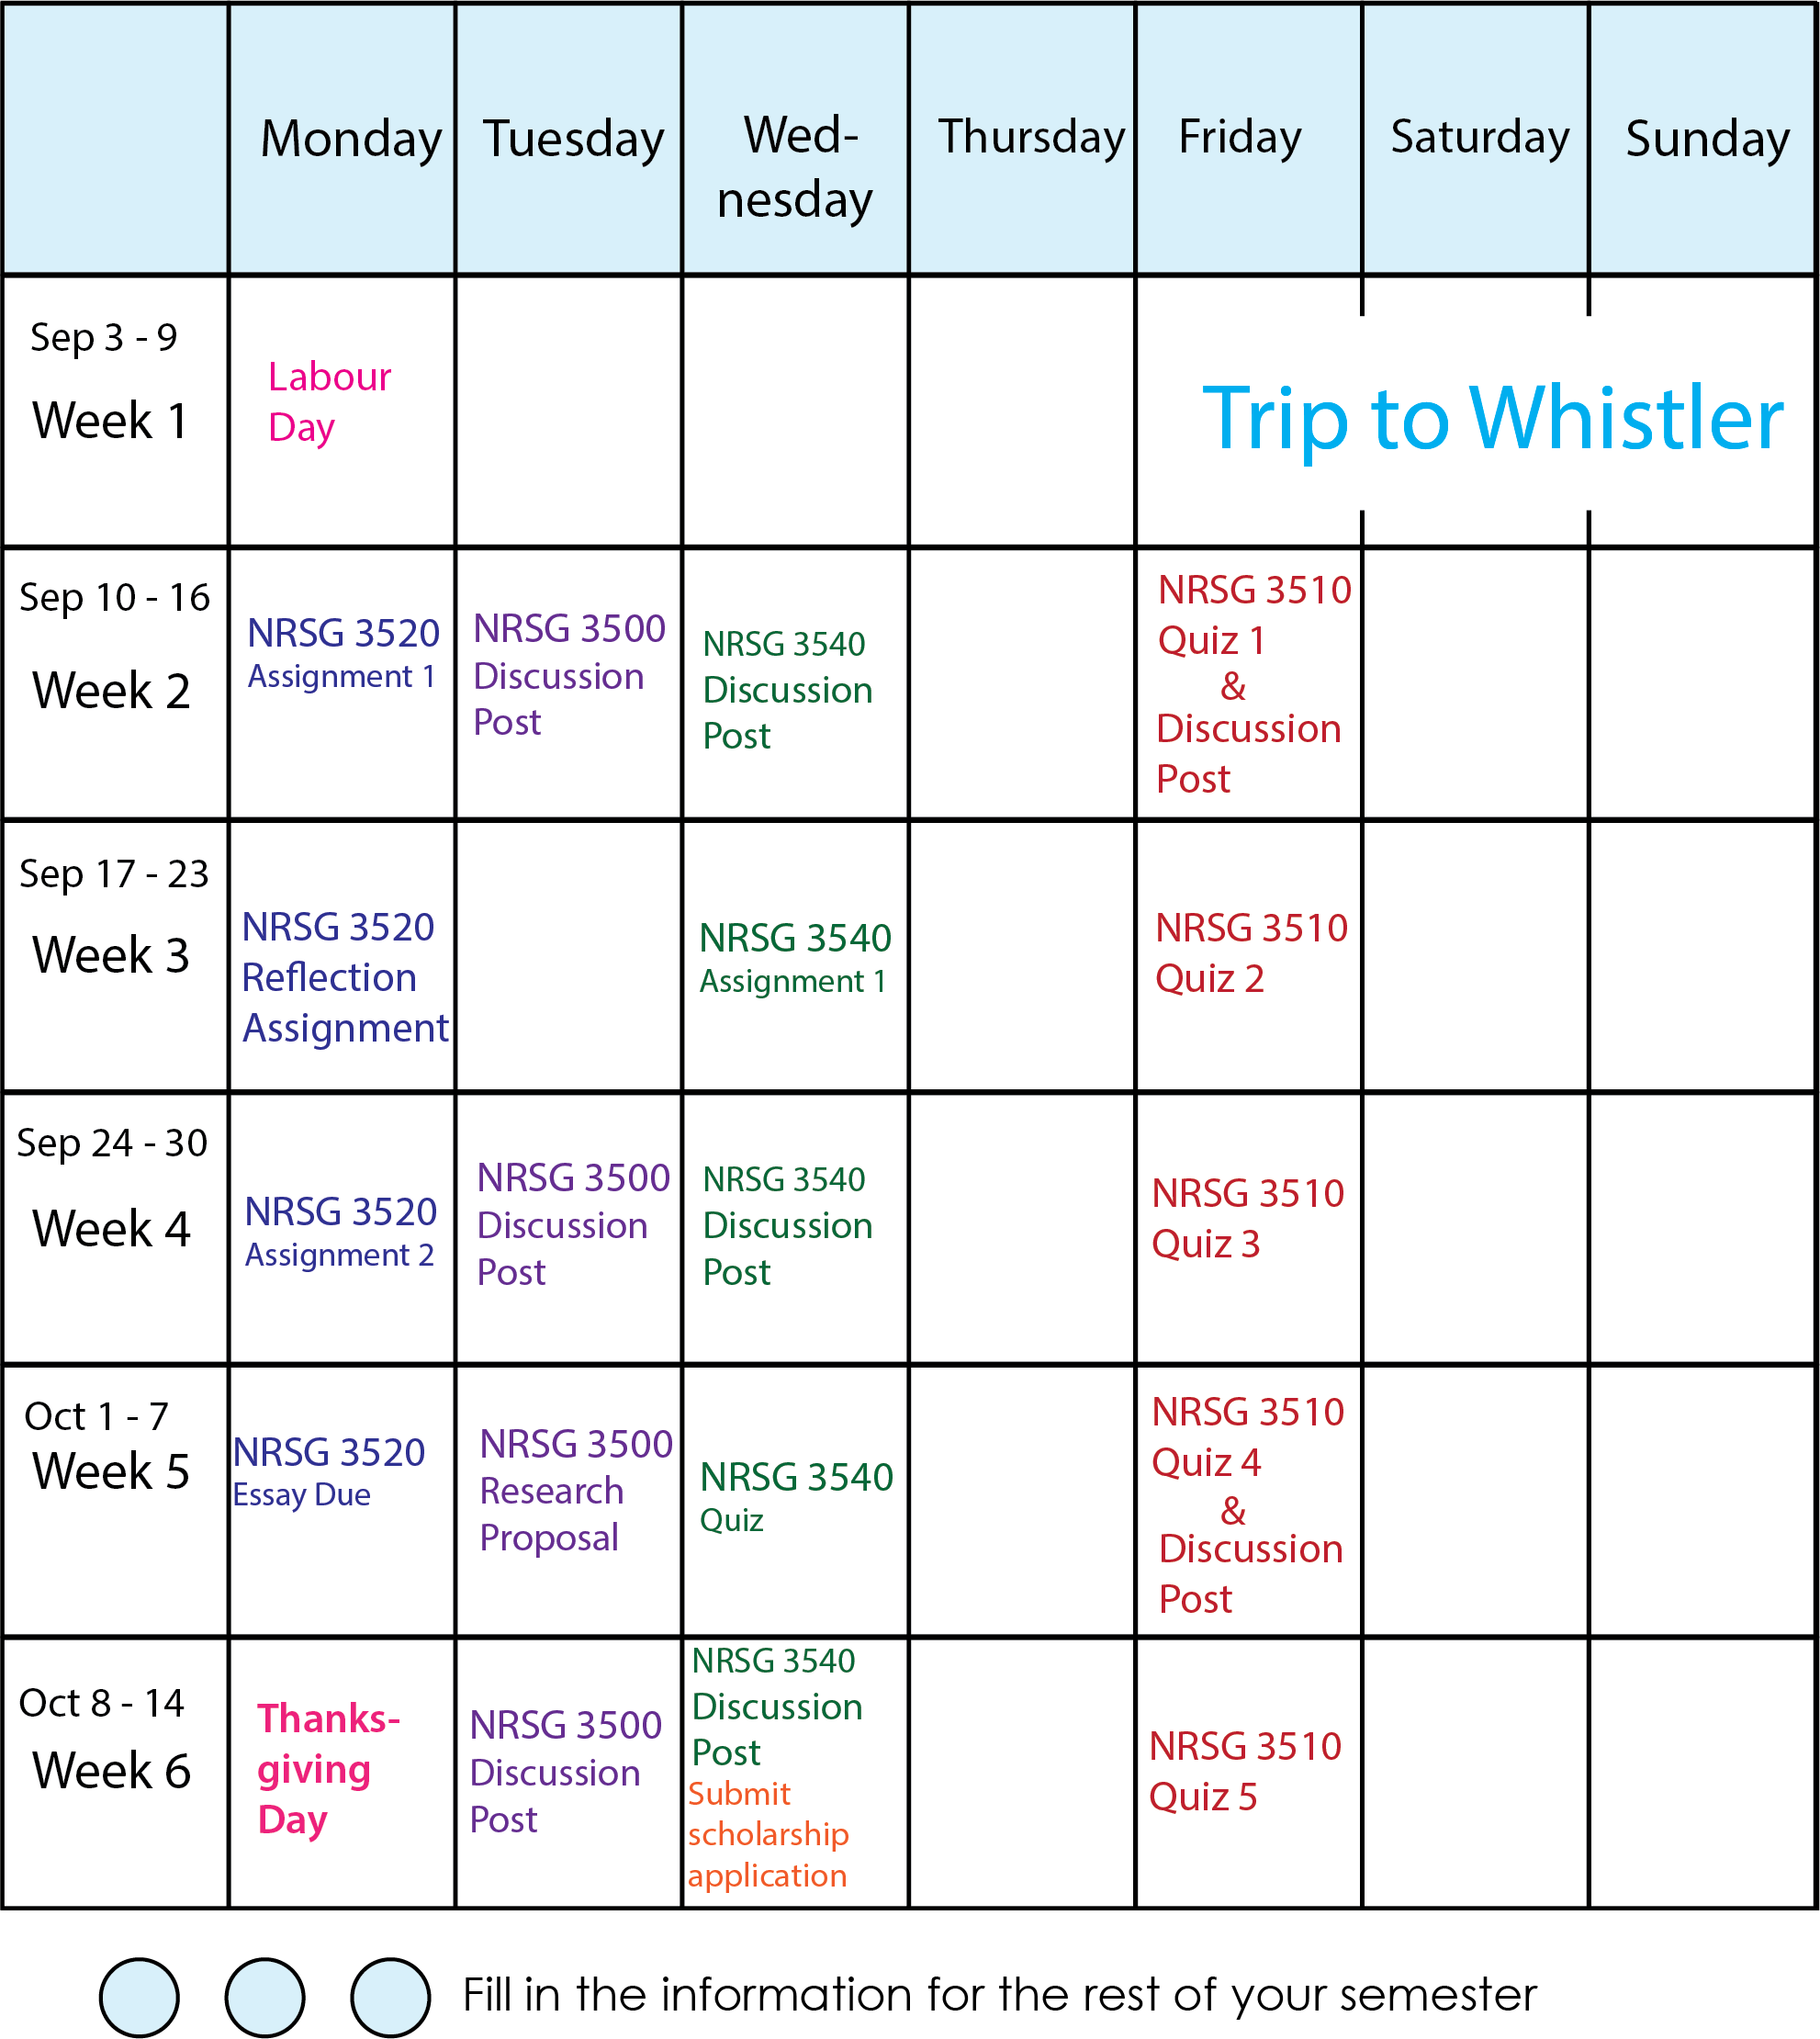 This is an example semester schedule for an online student. On the left, there is a row label for each week of the semester. Each columns represents one da of the week. In the boxes, the student has written key assignments, readings, and tests that will happen on that day. Additional life activities are also included in the schedule. This schedule shows the student the semester at a glance.